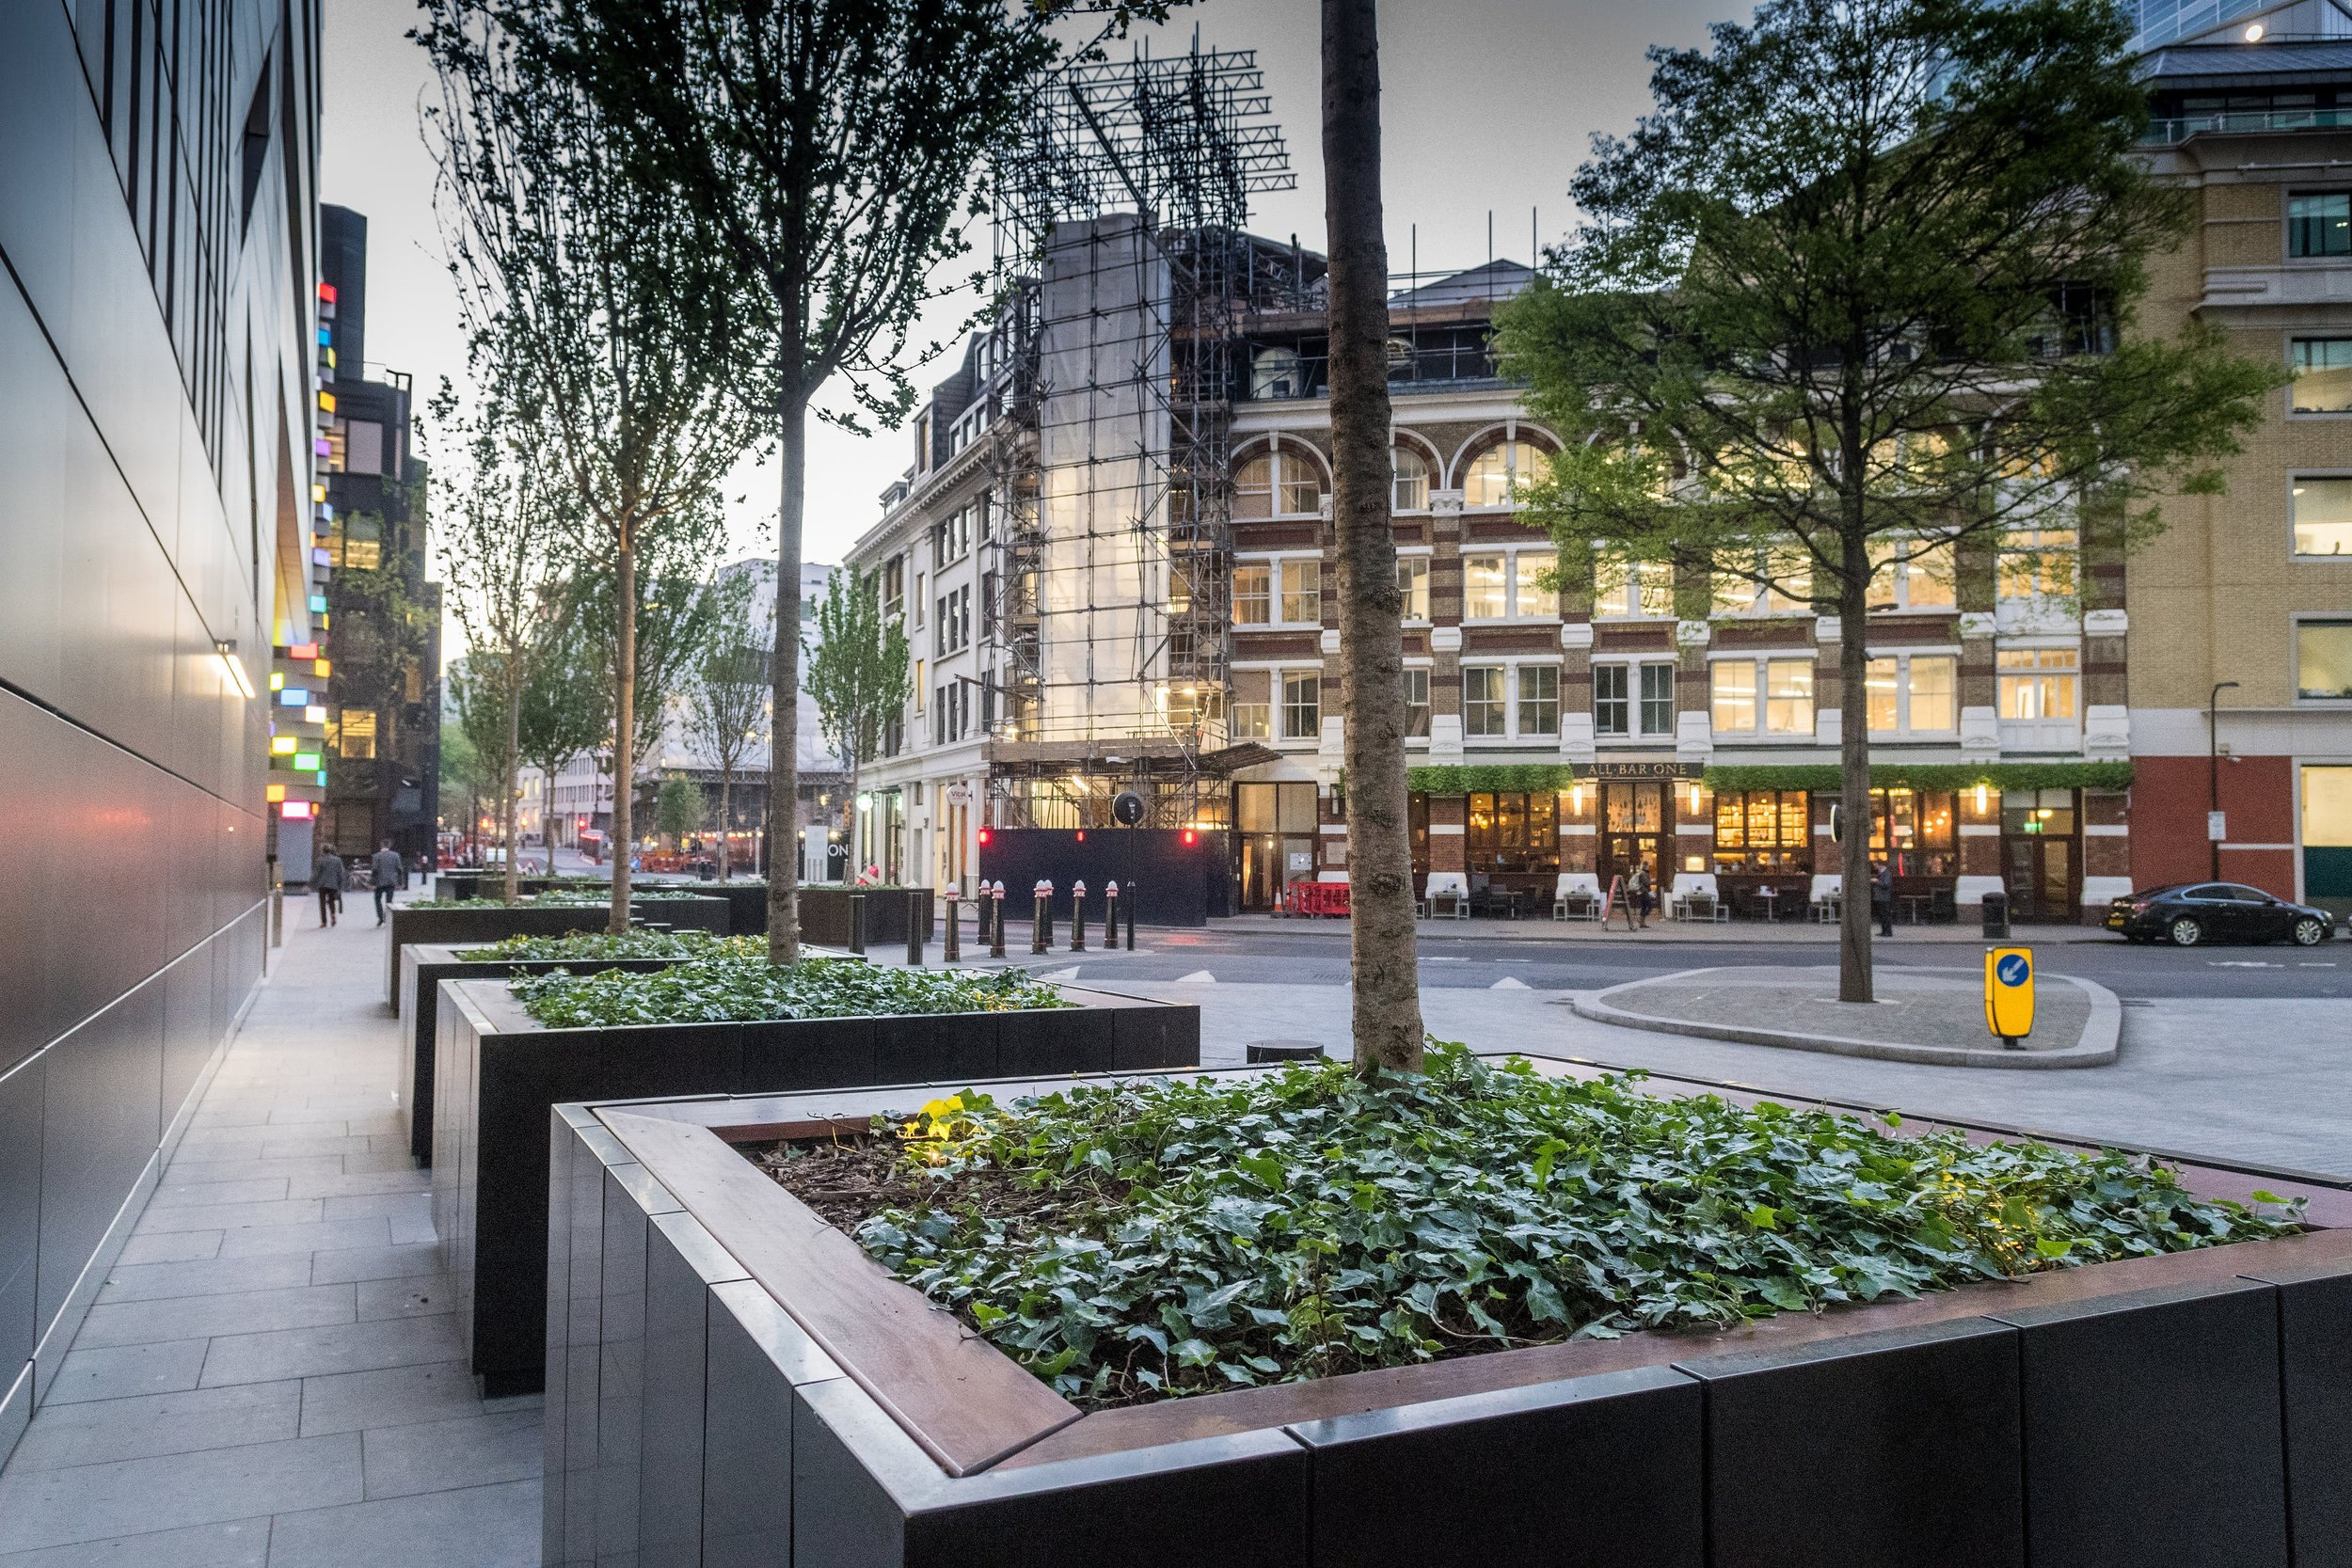 Securiscape's planters in Broadgate. Penguin PR: public relations, media and communications